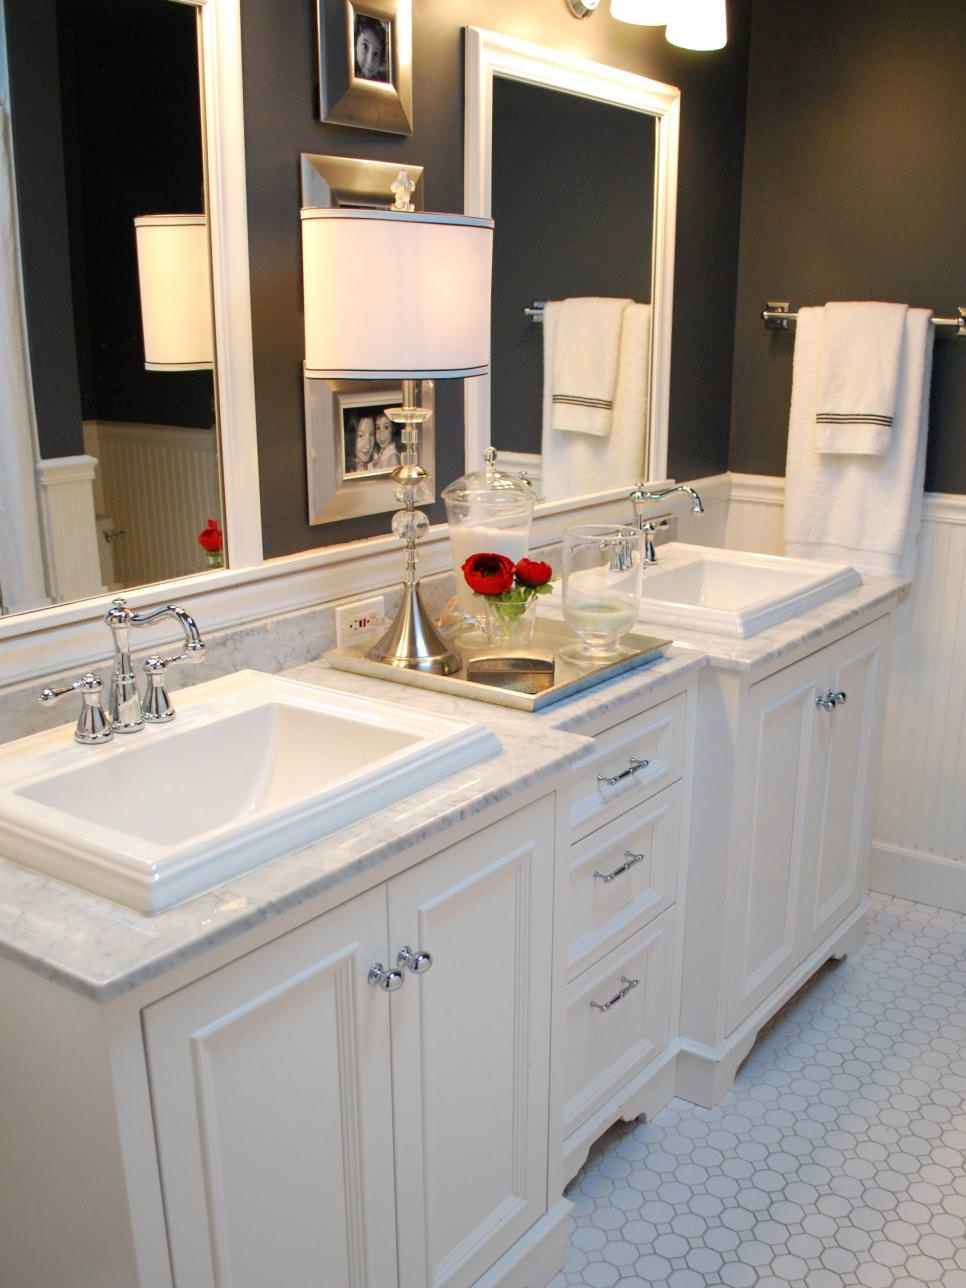 24 double bathroom vanity ideas bathroom designs ForBathroom Double Vanity Design Ideas